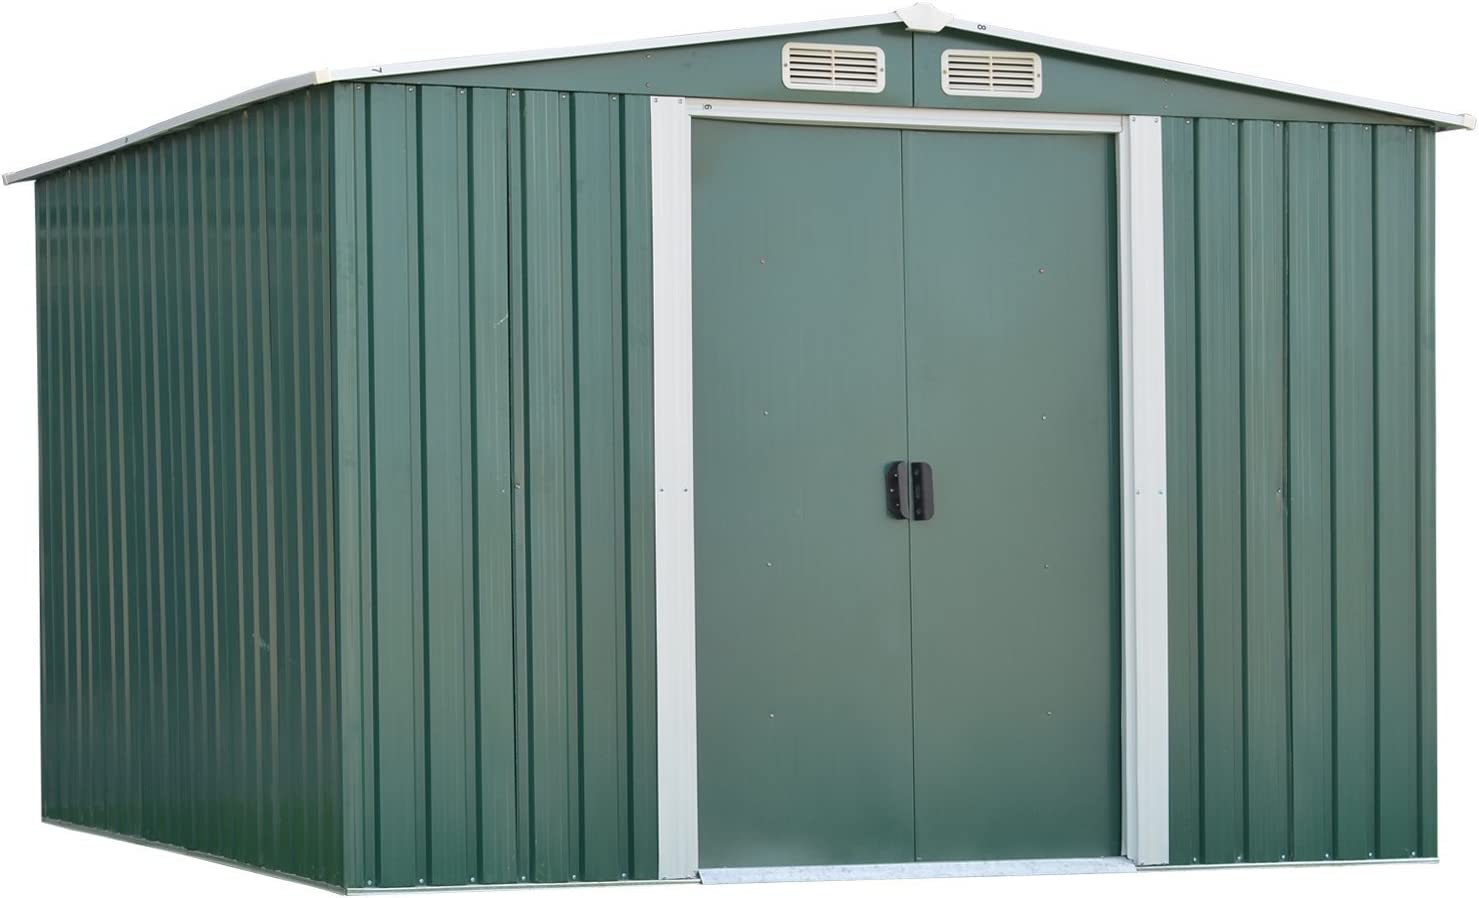 10FT X 8FT Storage Shed, Utility Steel Toolshed Storage Kit for Outdoor Garden Backyard Green